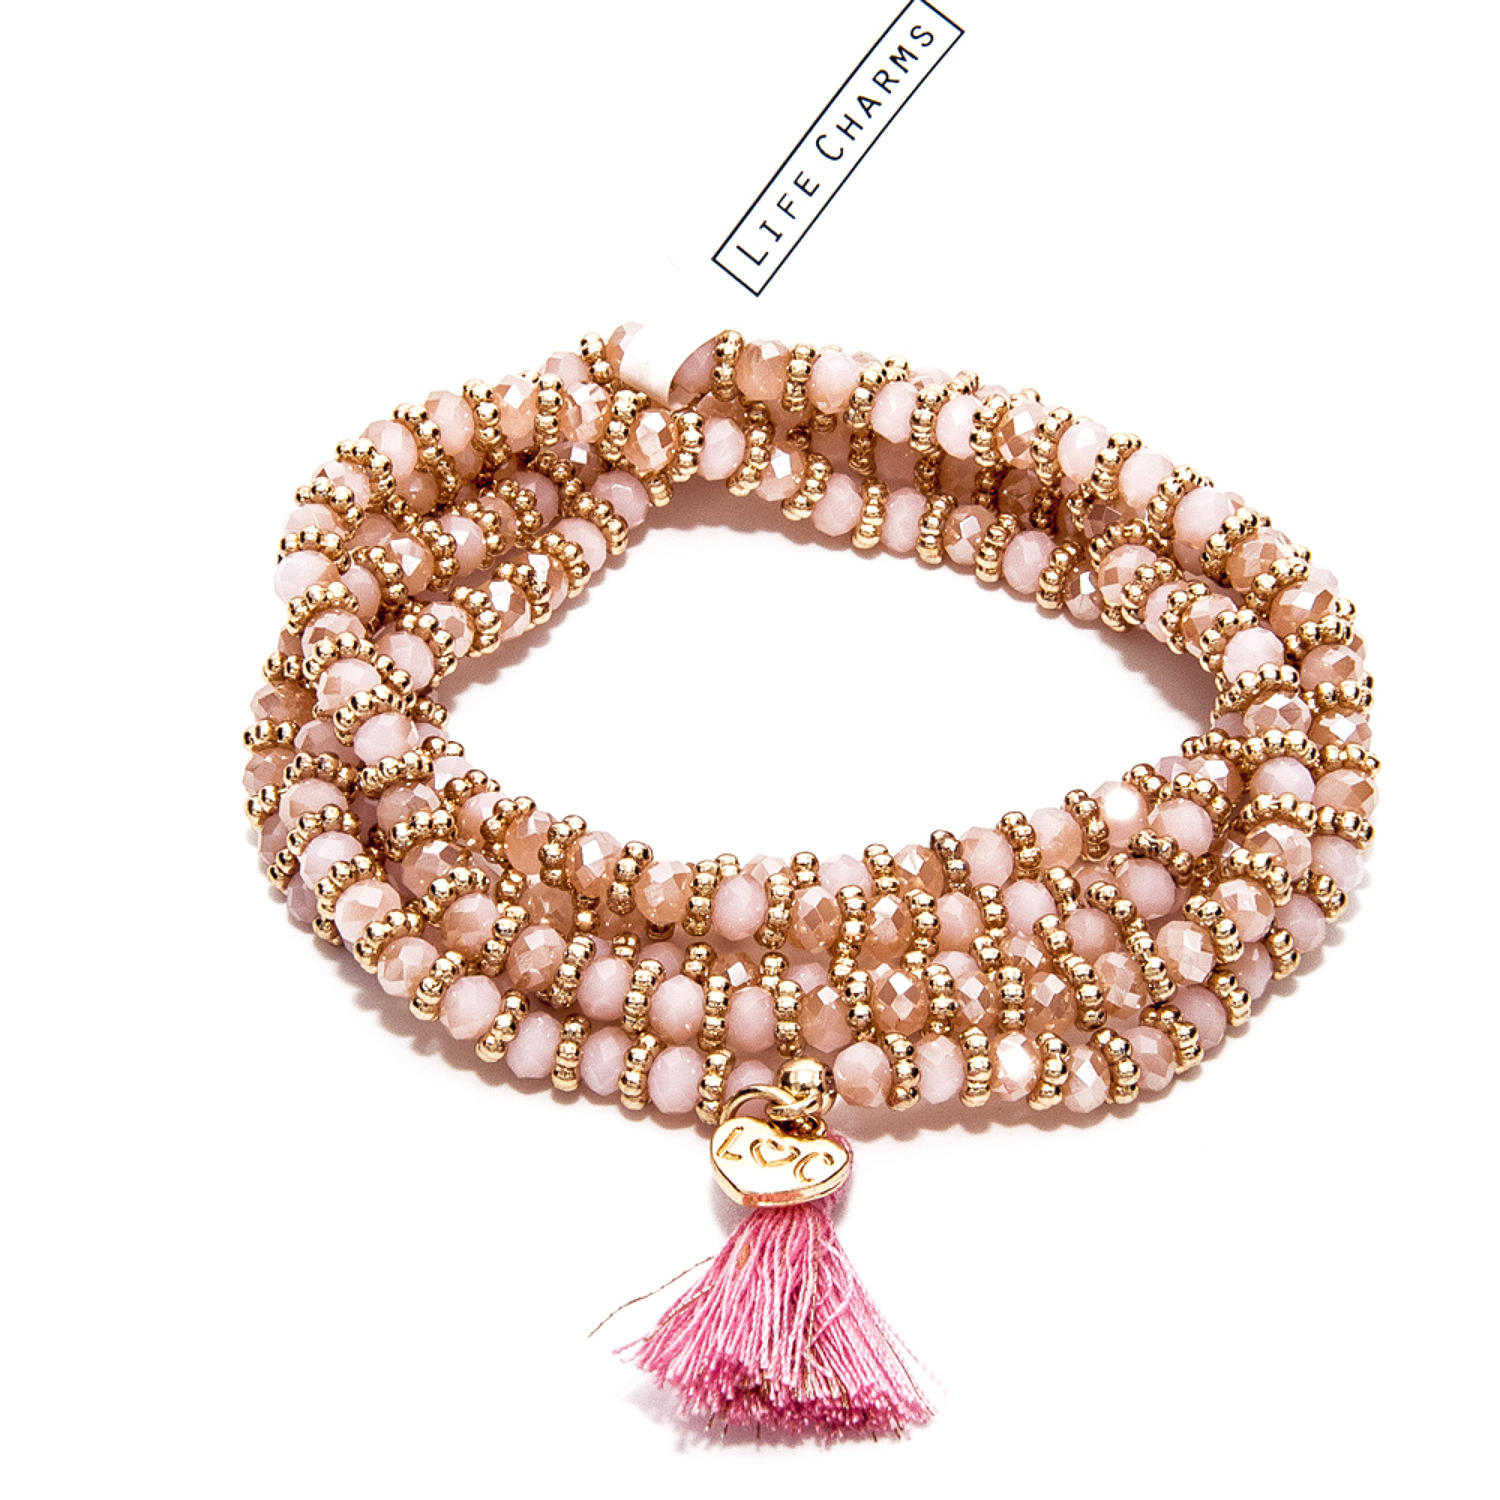 Balearic Pink & Gold Wrap Bracelet/Necklace